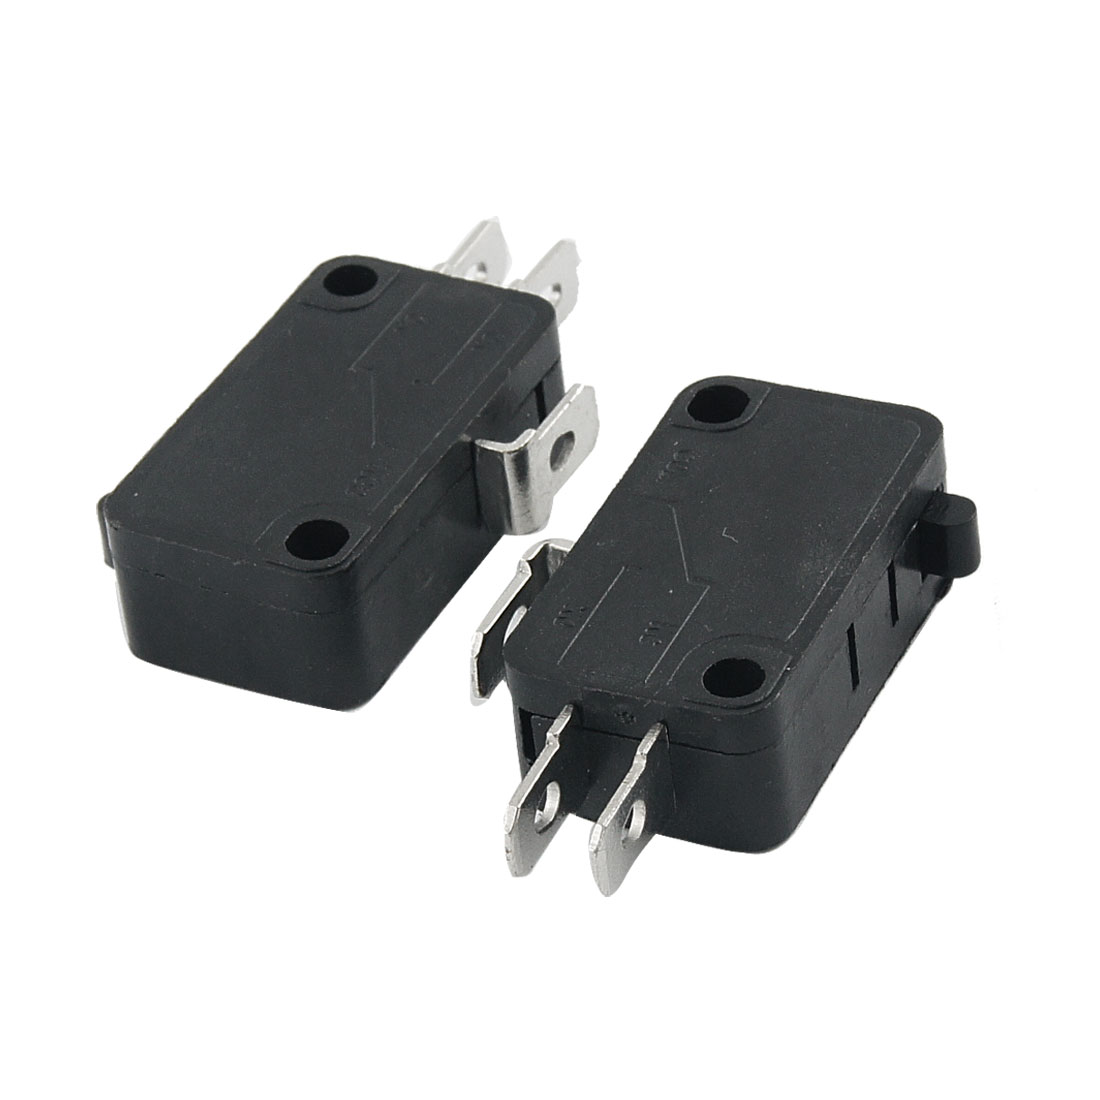 2 Pcs Electric 1NO 1NC Contacts Push Button Micro Switches Black